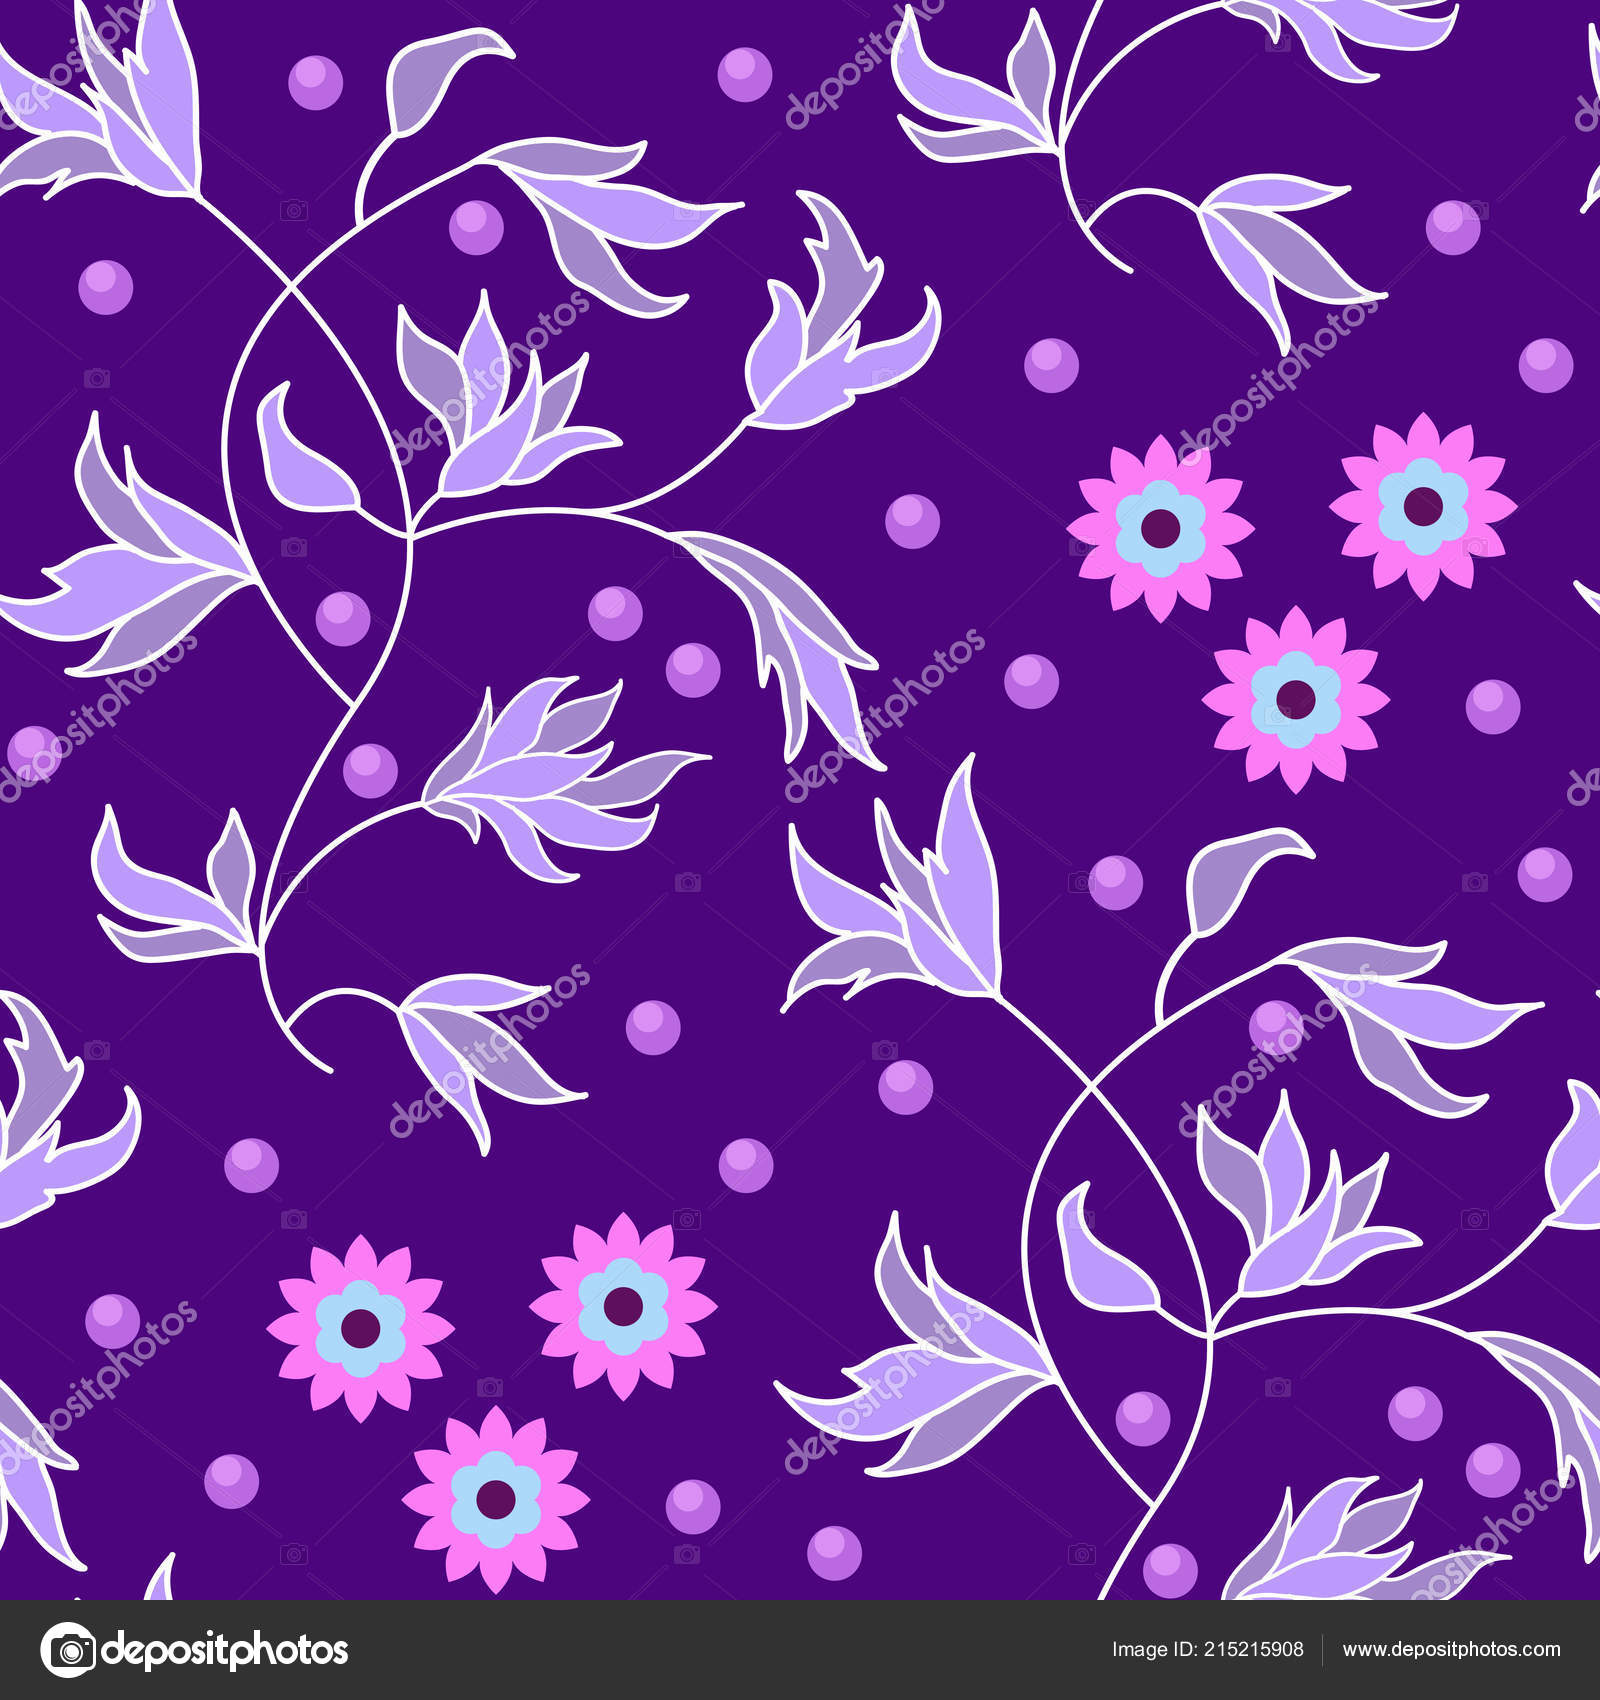 Abstract Floral Seamless Pattern Ornament Flowers Leaves